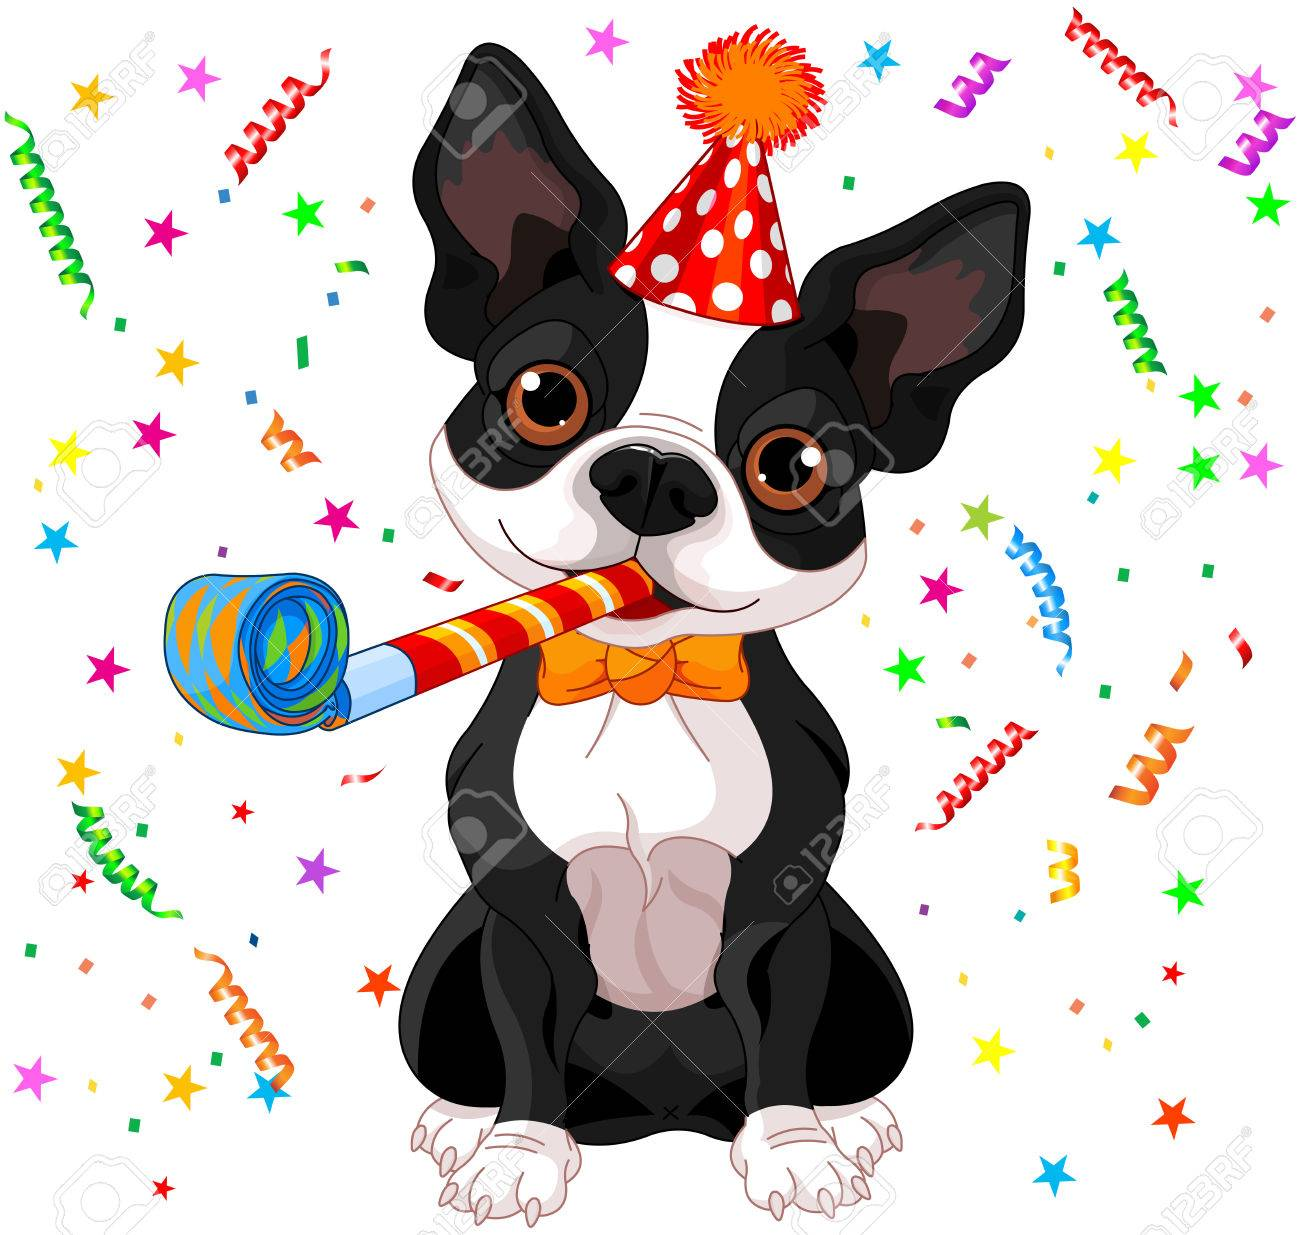 Coffre de voiture: hayon ou portes? - Page 2 35588778-illustration-of-cute-boston-terrier-celebrating